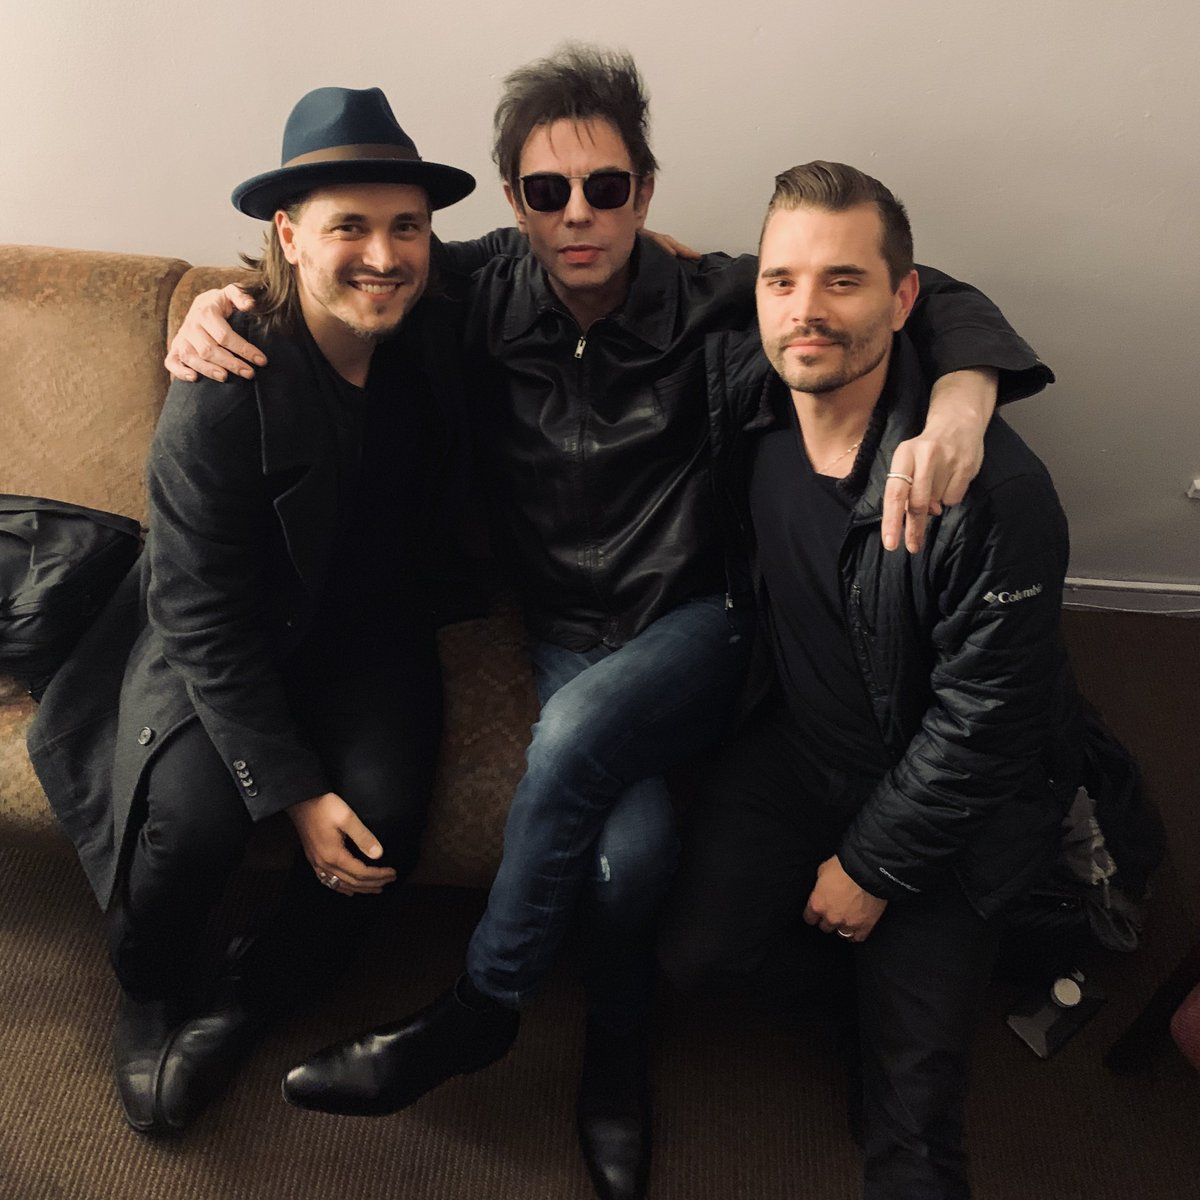 test Twitter Media - Finished an incredible North American tour with Echo & The @Bunnymen. We continue to be inspired by their groundbreaking music & the unparalleled poetry of Ian McCulloch! Thanks to everyone who came to the shows!  . #ENATION #Bunnymen #Tour #Alternative #New Wave #PostPunk https://t.co/ZJsH3iCjCX